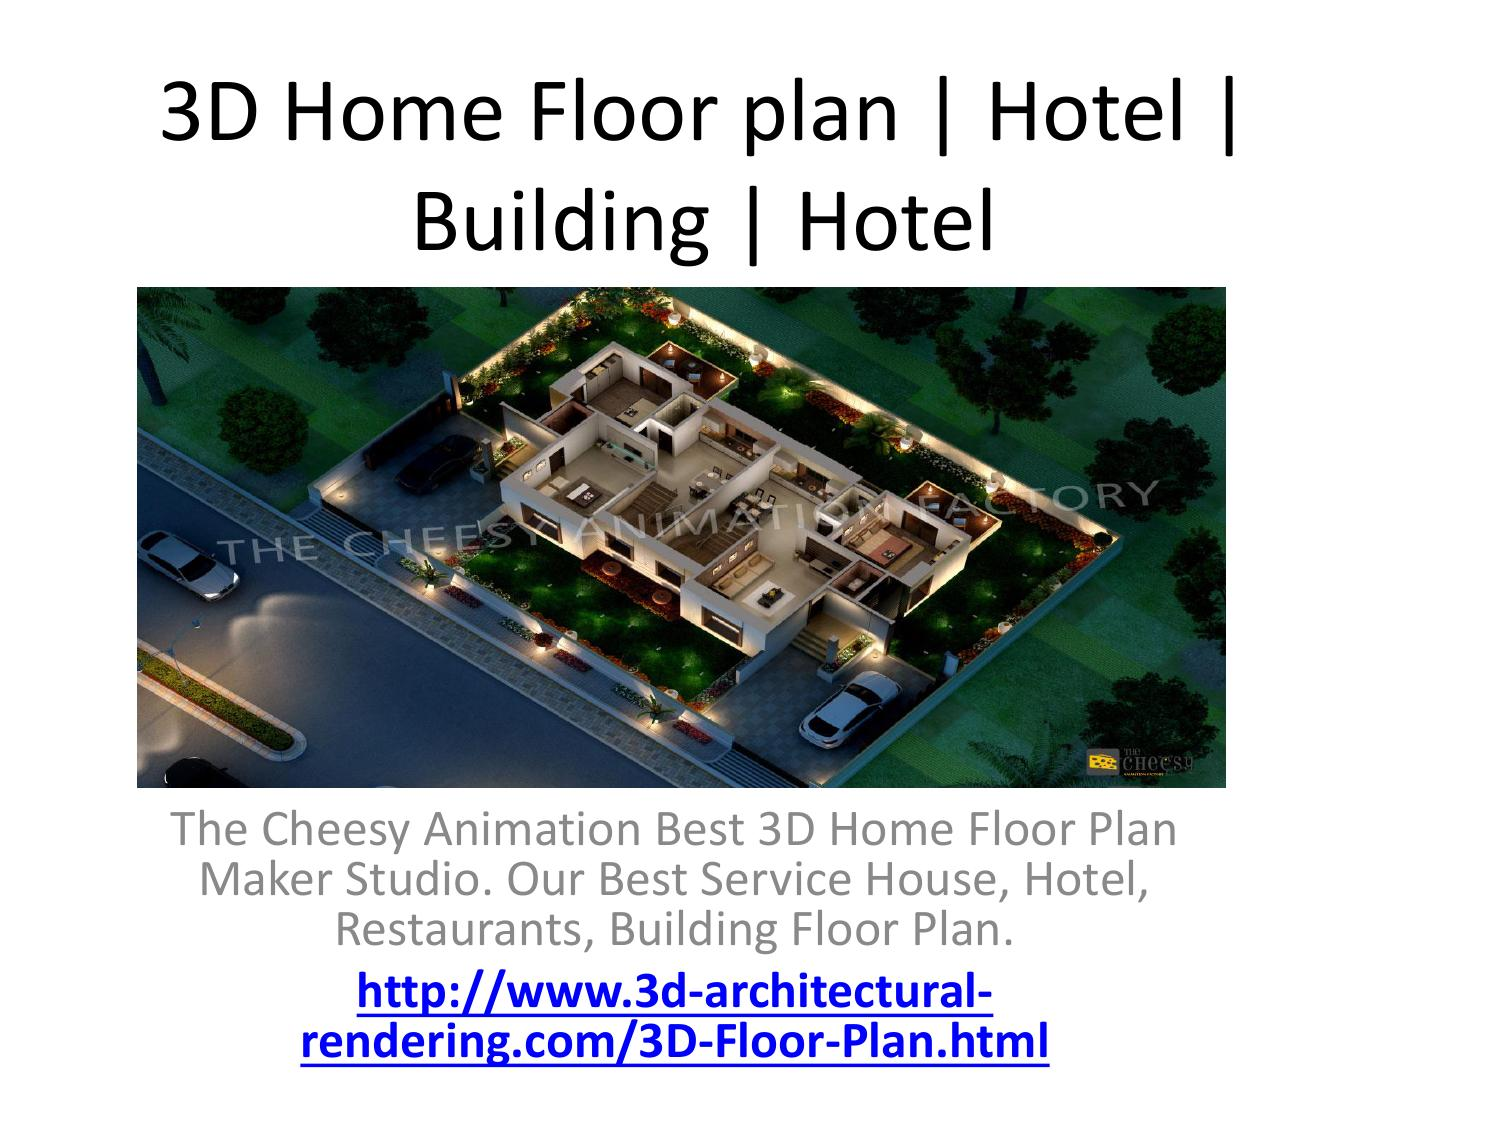 Beau 3D Home Floor Plan | Hotel | Building | Hotel By 3D Architectural Rendering  Companies Dubai   Issuu